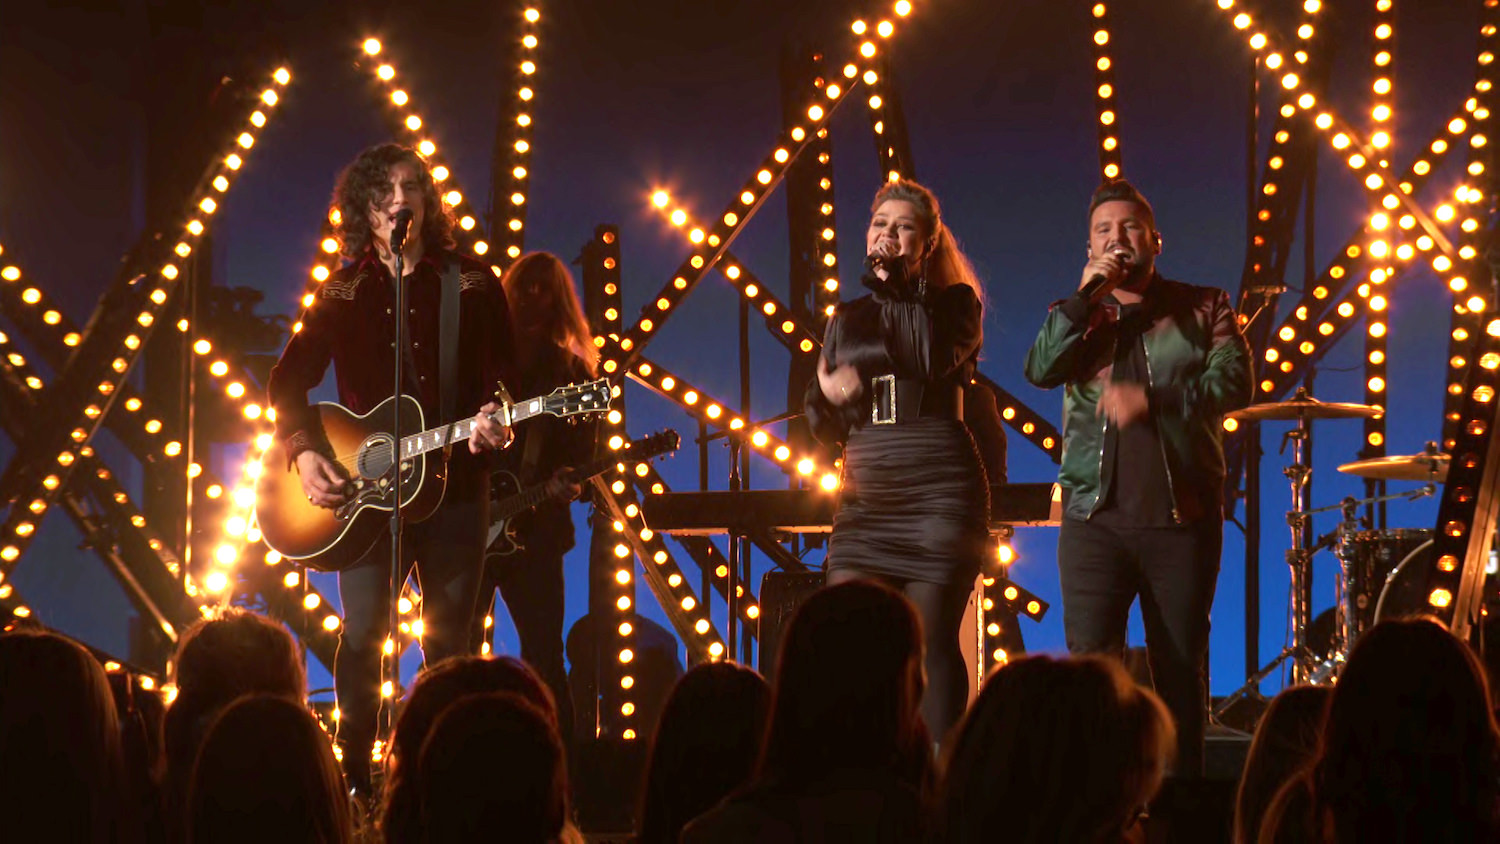 DAN + SHAY WITH KELLY CLARKSON - ACM AWARDS